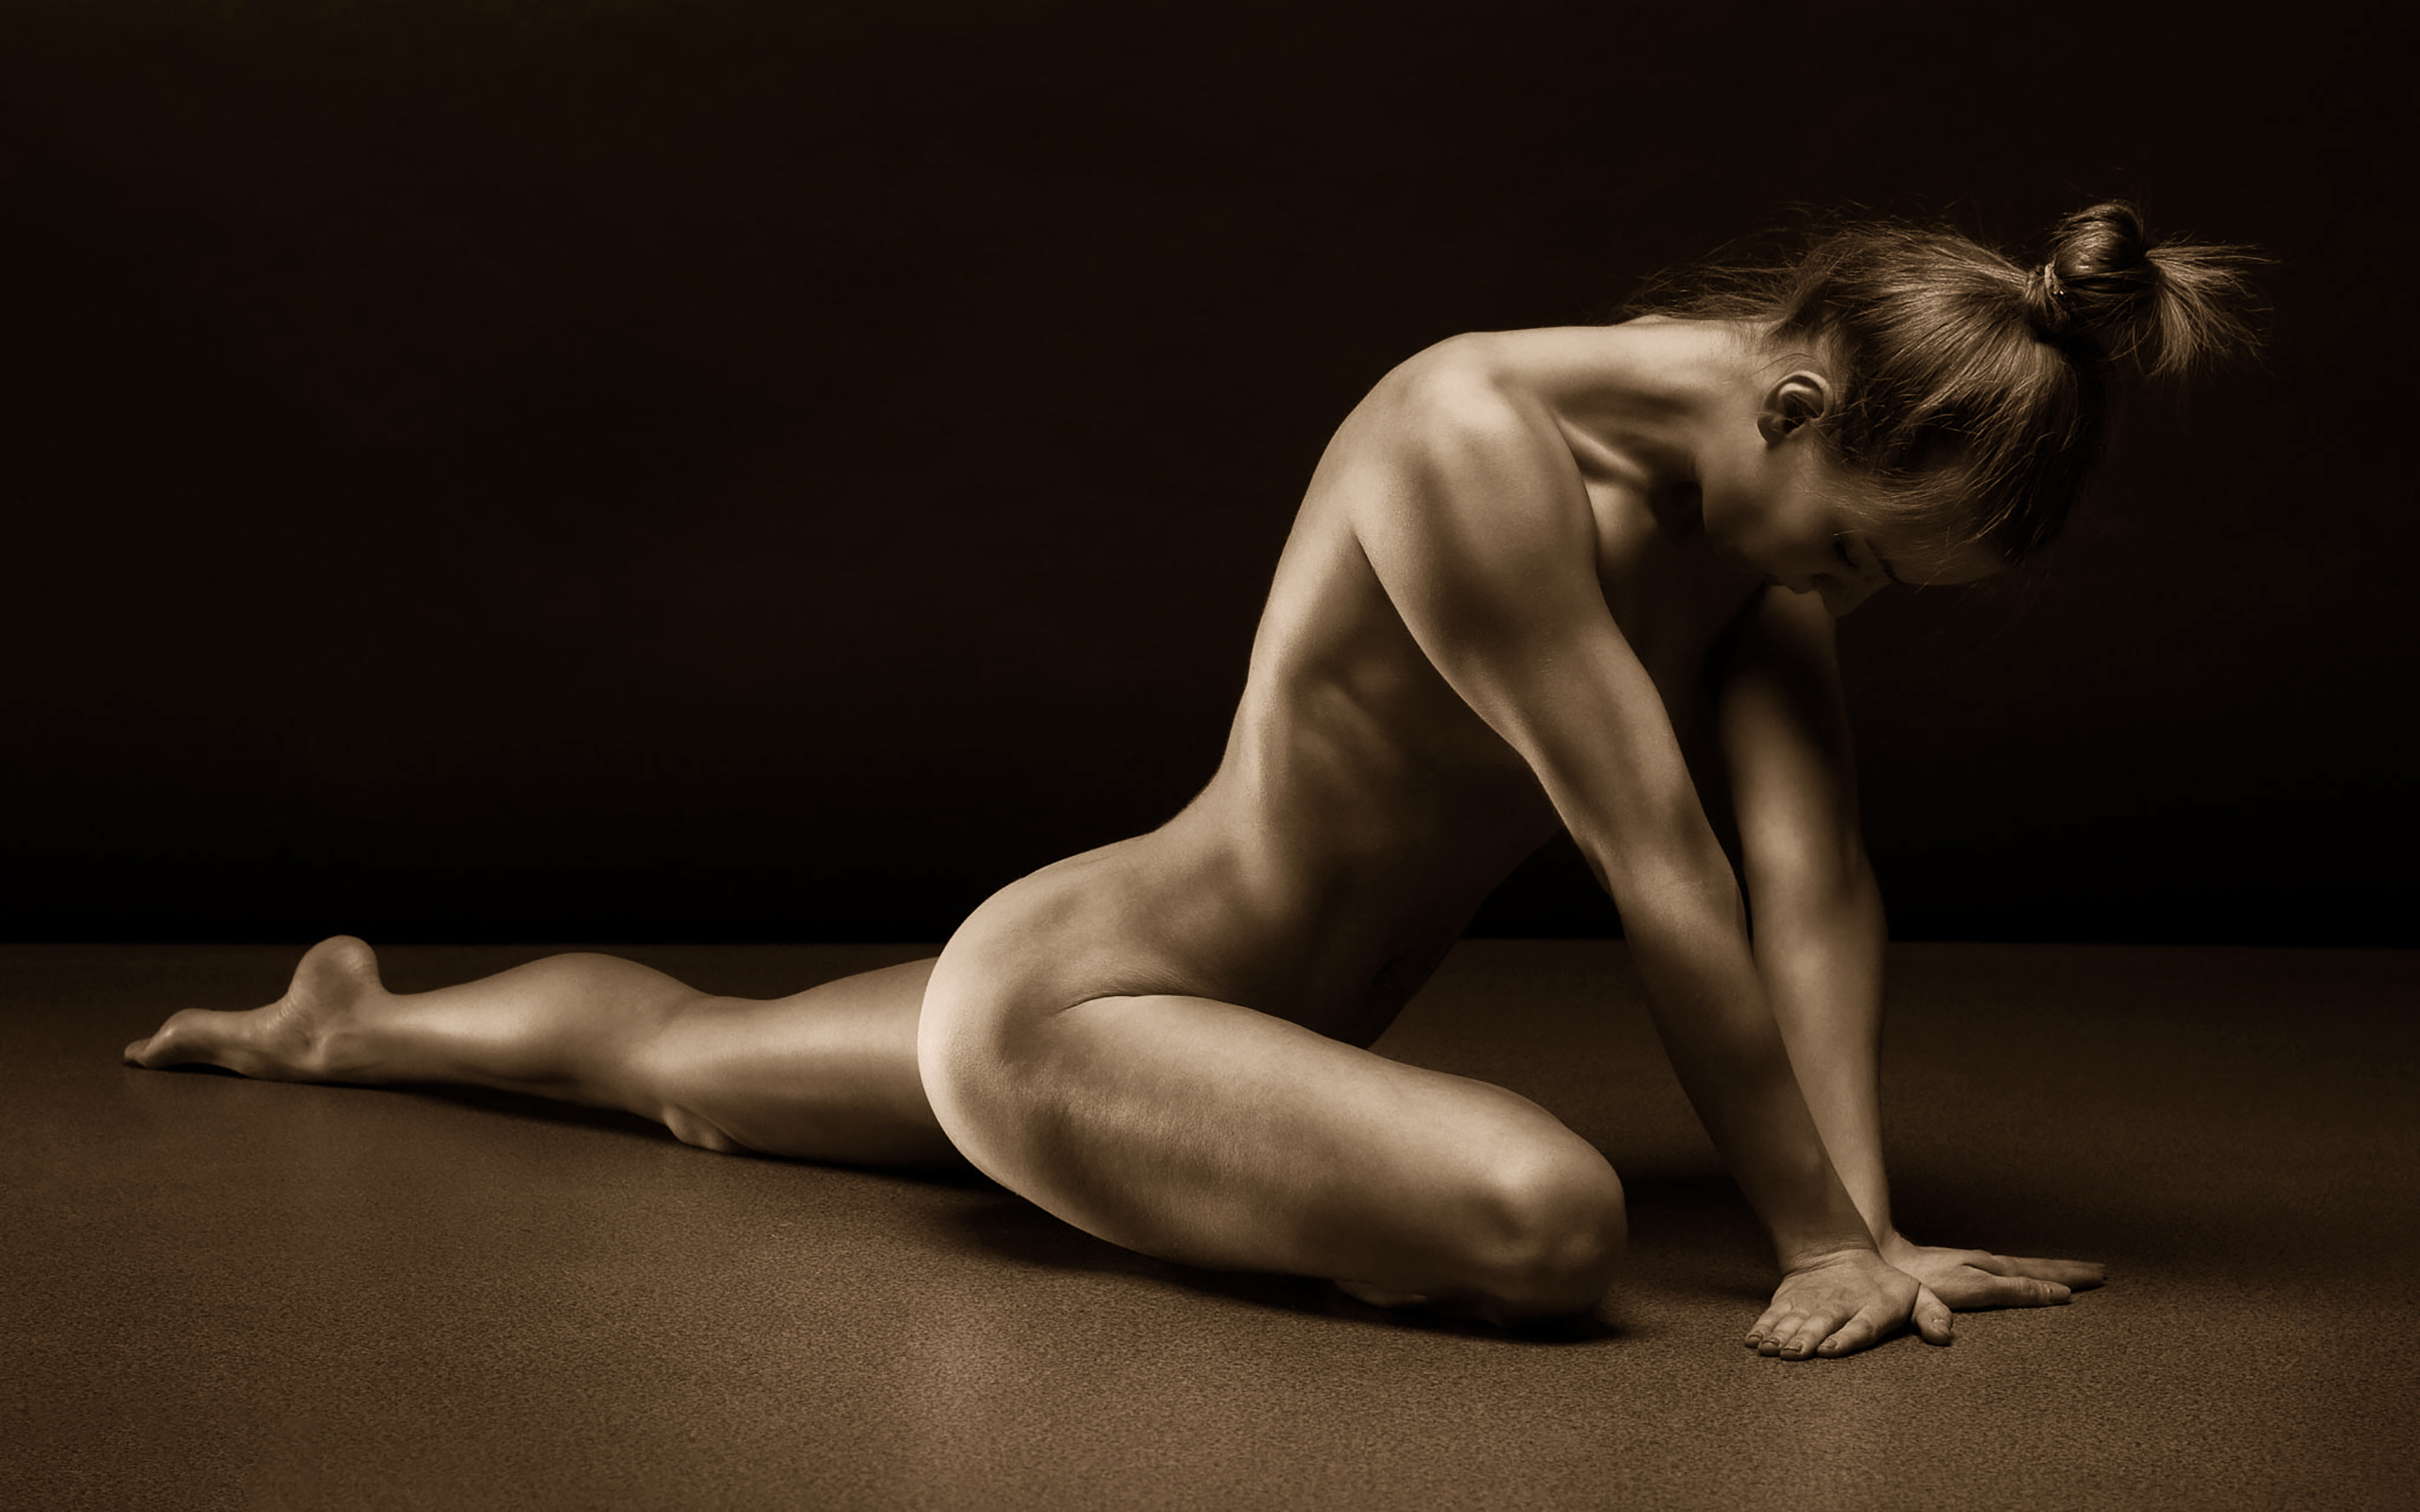 Nude Photography Tips, Tricks Everything You Need To Know